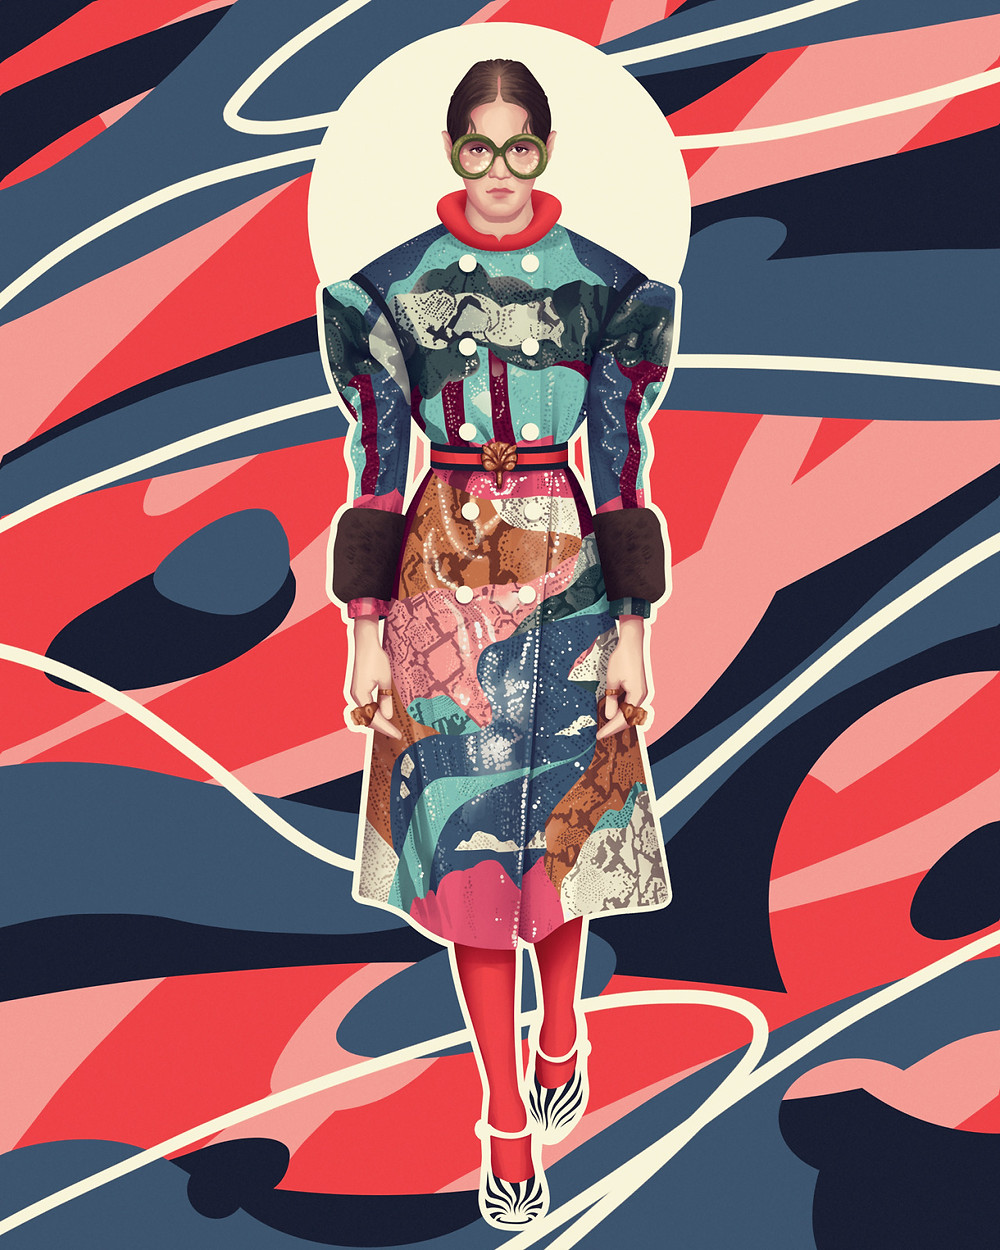 Illustrations based on Gucci's F/W16 Collection | personal illustrations by Jack Hughes